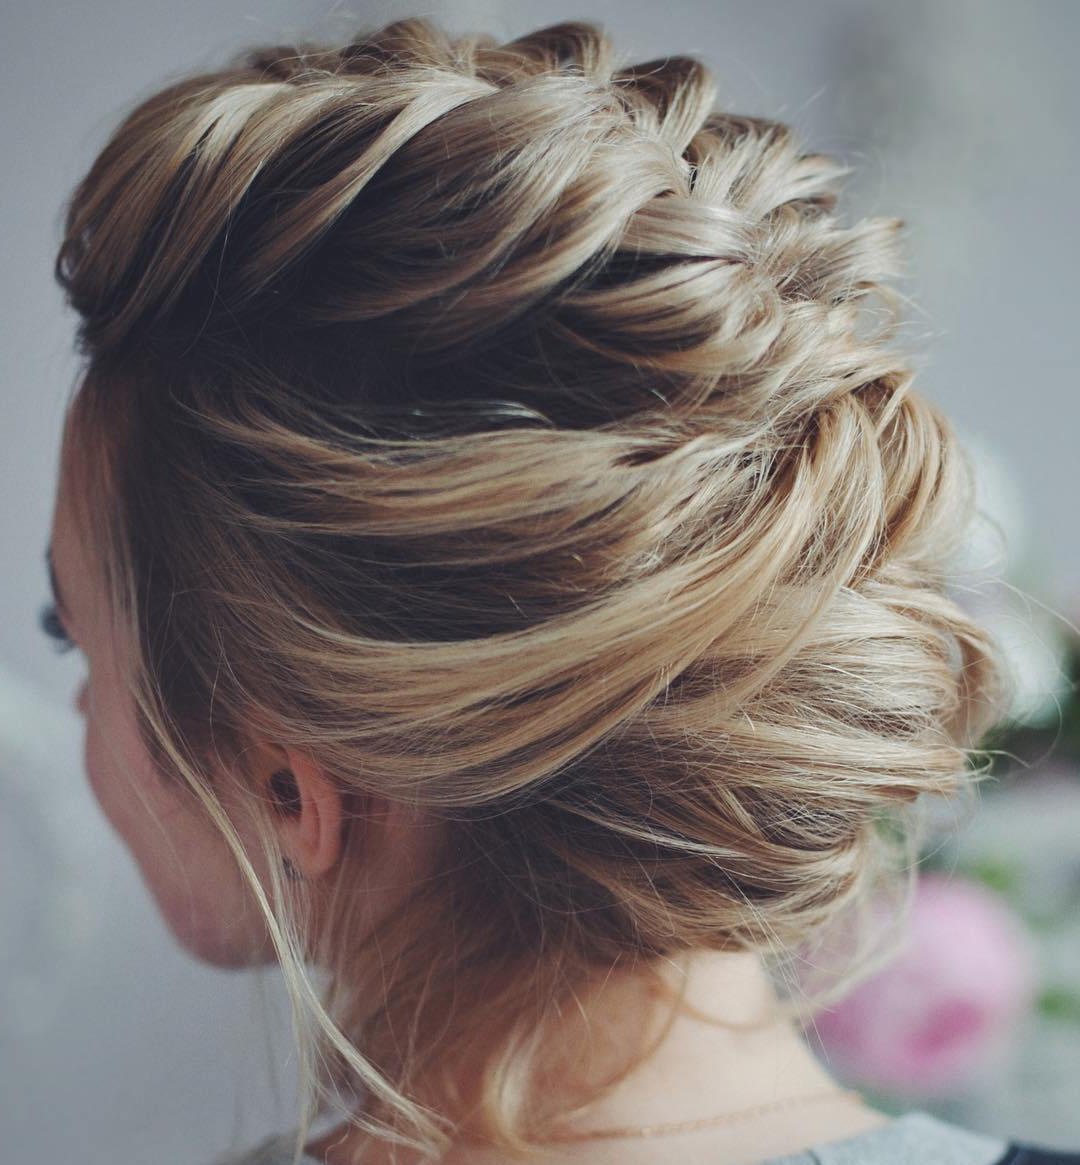 Cute Prom Hairstyles (Best Prom Hair Styles In 2018) With Cute Hairstyles For Short Hair For Homecoming (View 11 of 25)